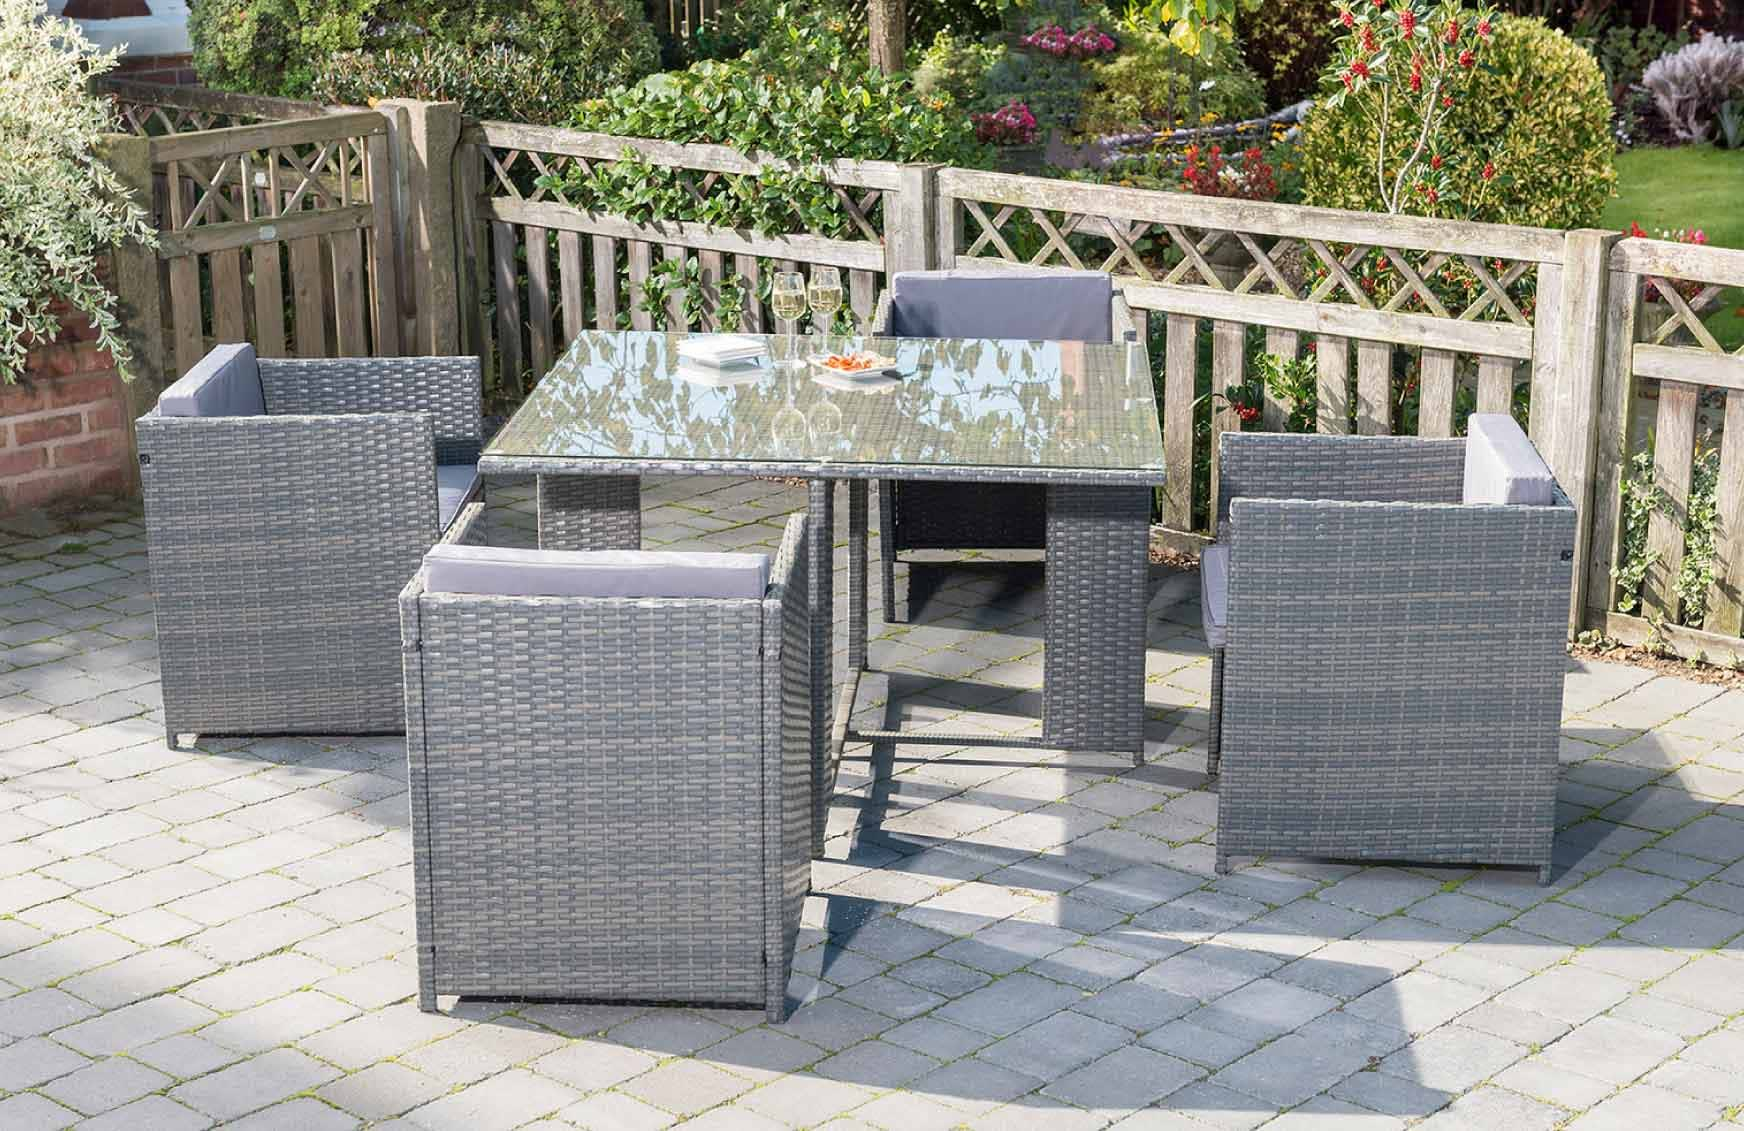 Our Favourite Garden Furniture Buys For Summer 2020 - Garden Furniture Clearance Ireland